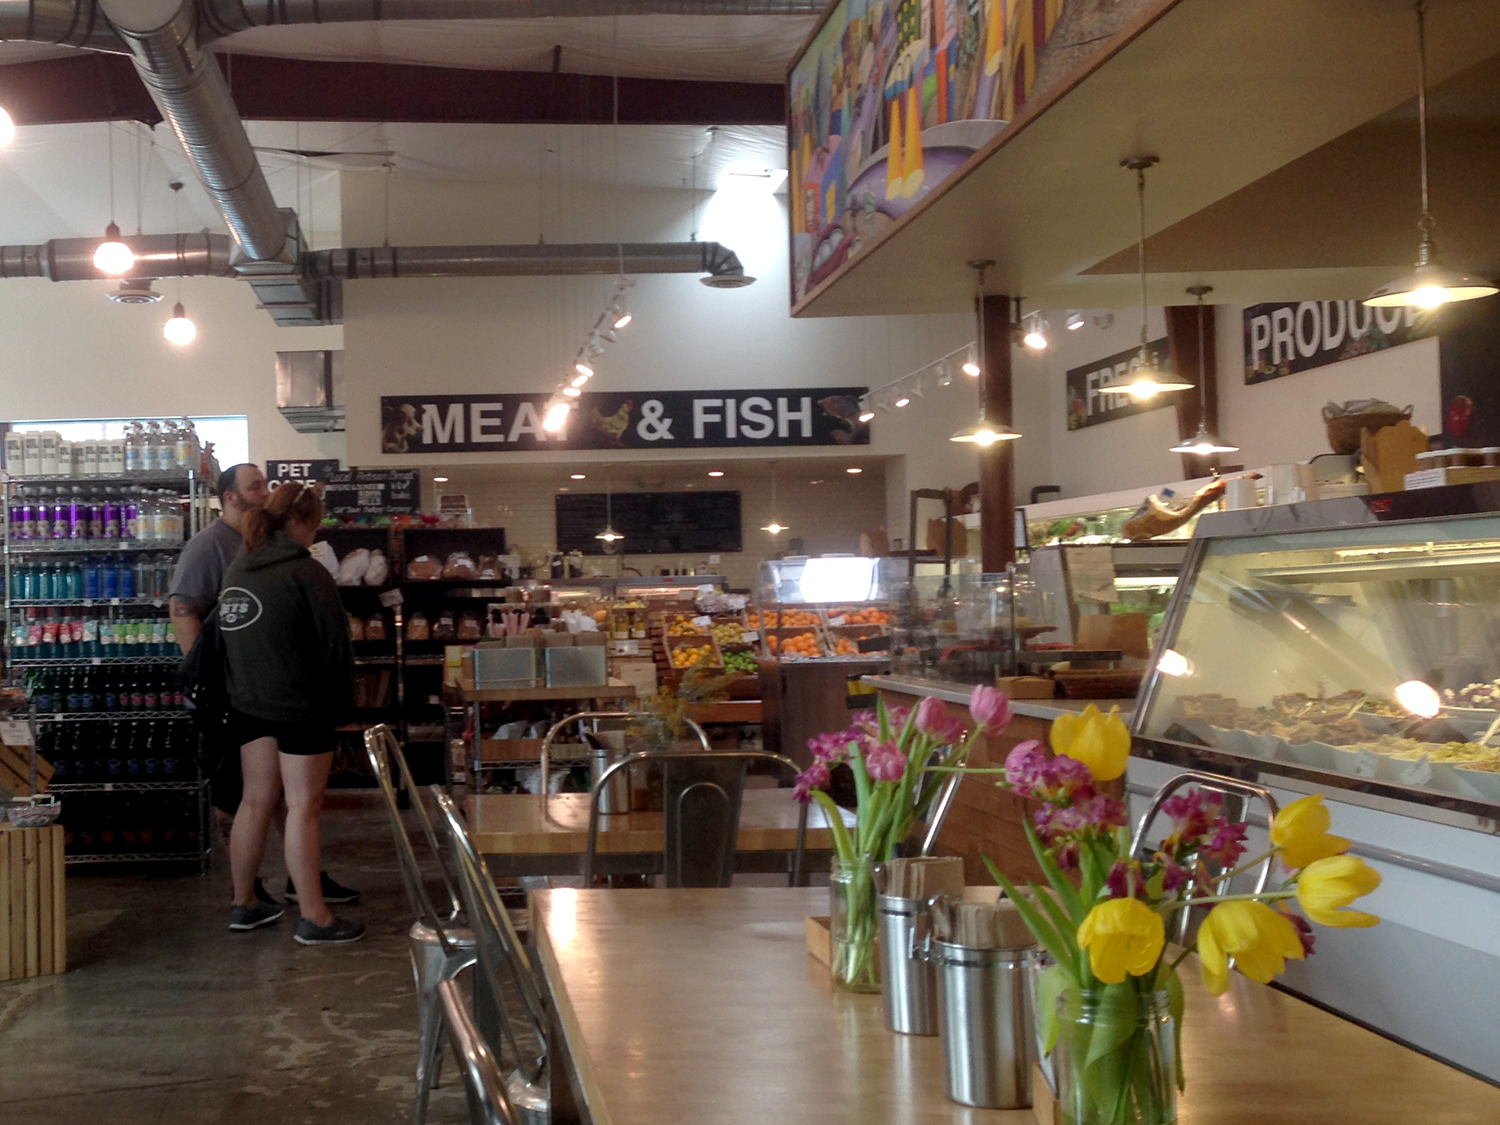 Inside Urban Radish, an eco-conscious grocery store